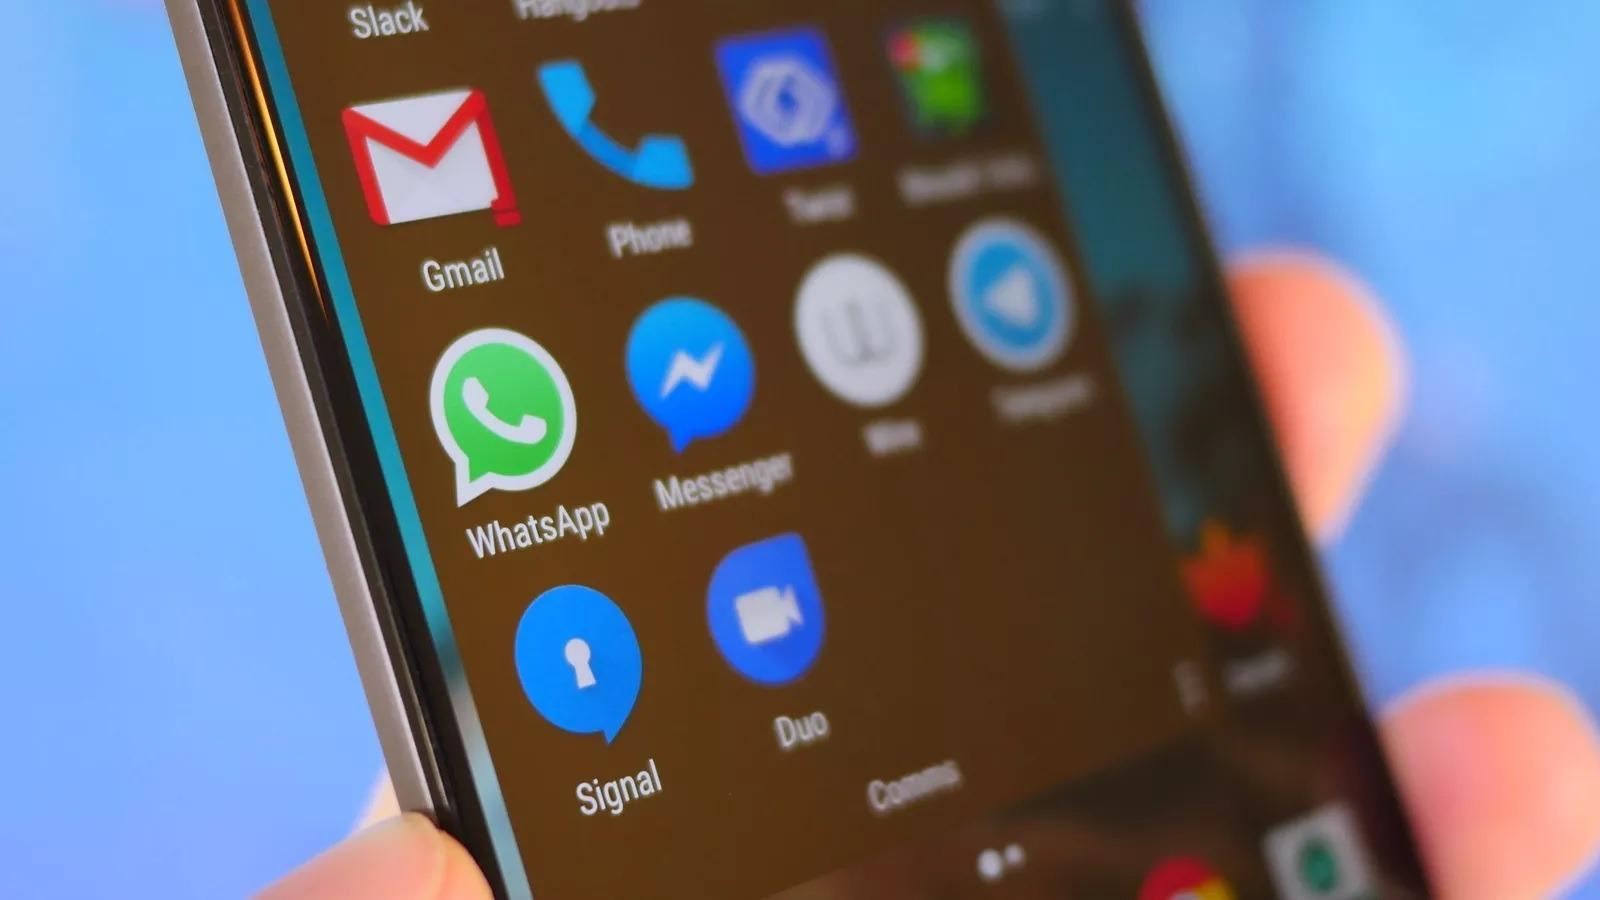 These new WhatsApp changes might disappoint users